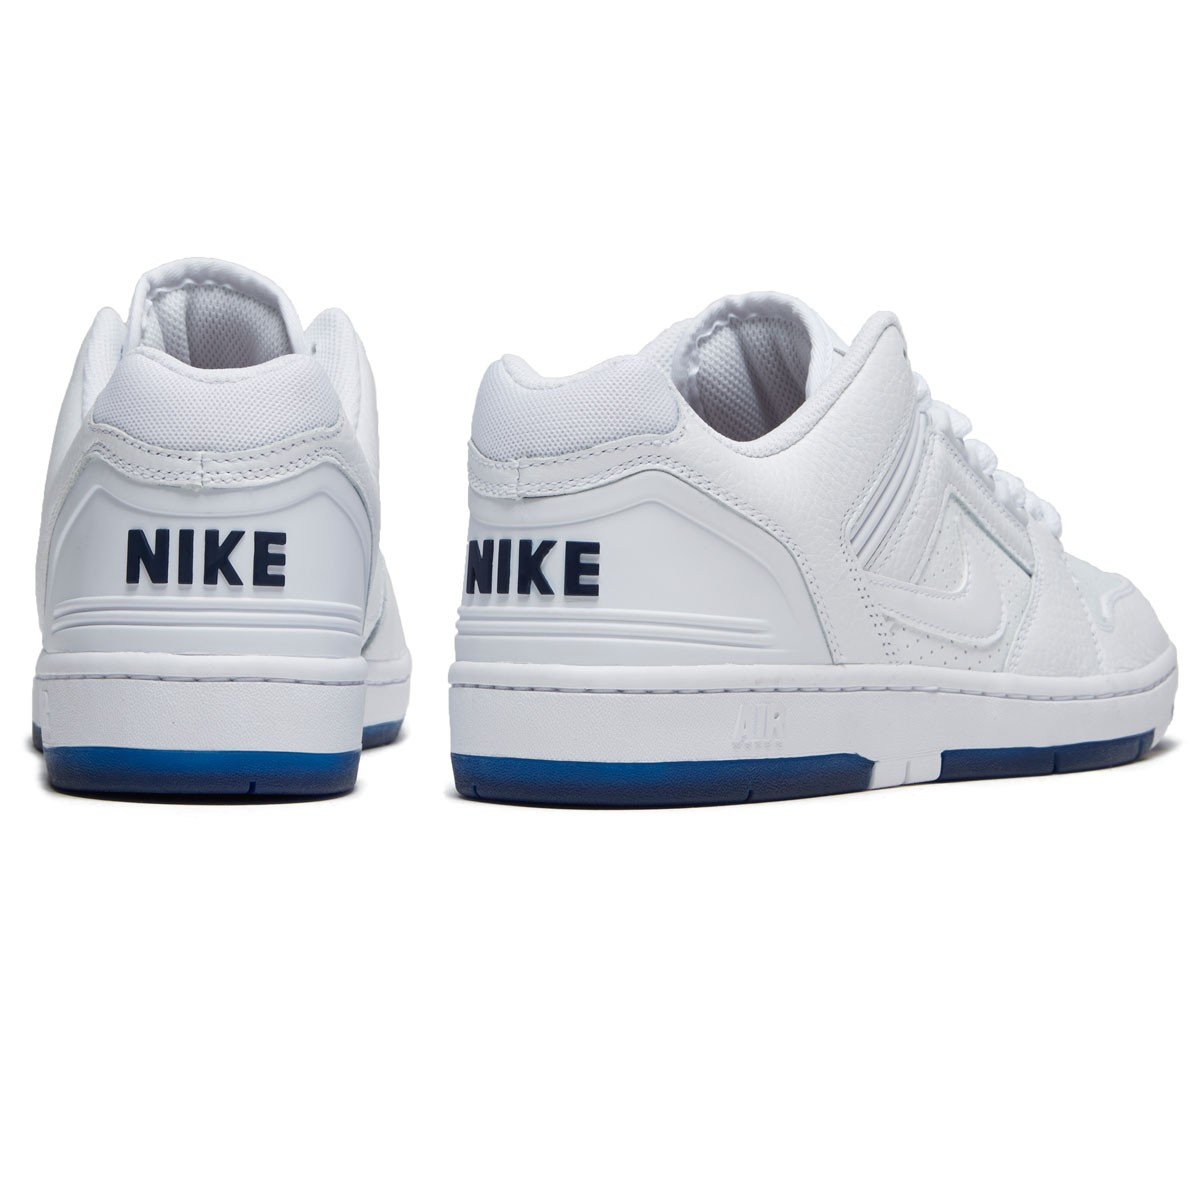 ca10e06b0237e Nike SB Kevin Bradley Air Force II Low QS Shoes - White White Blue